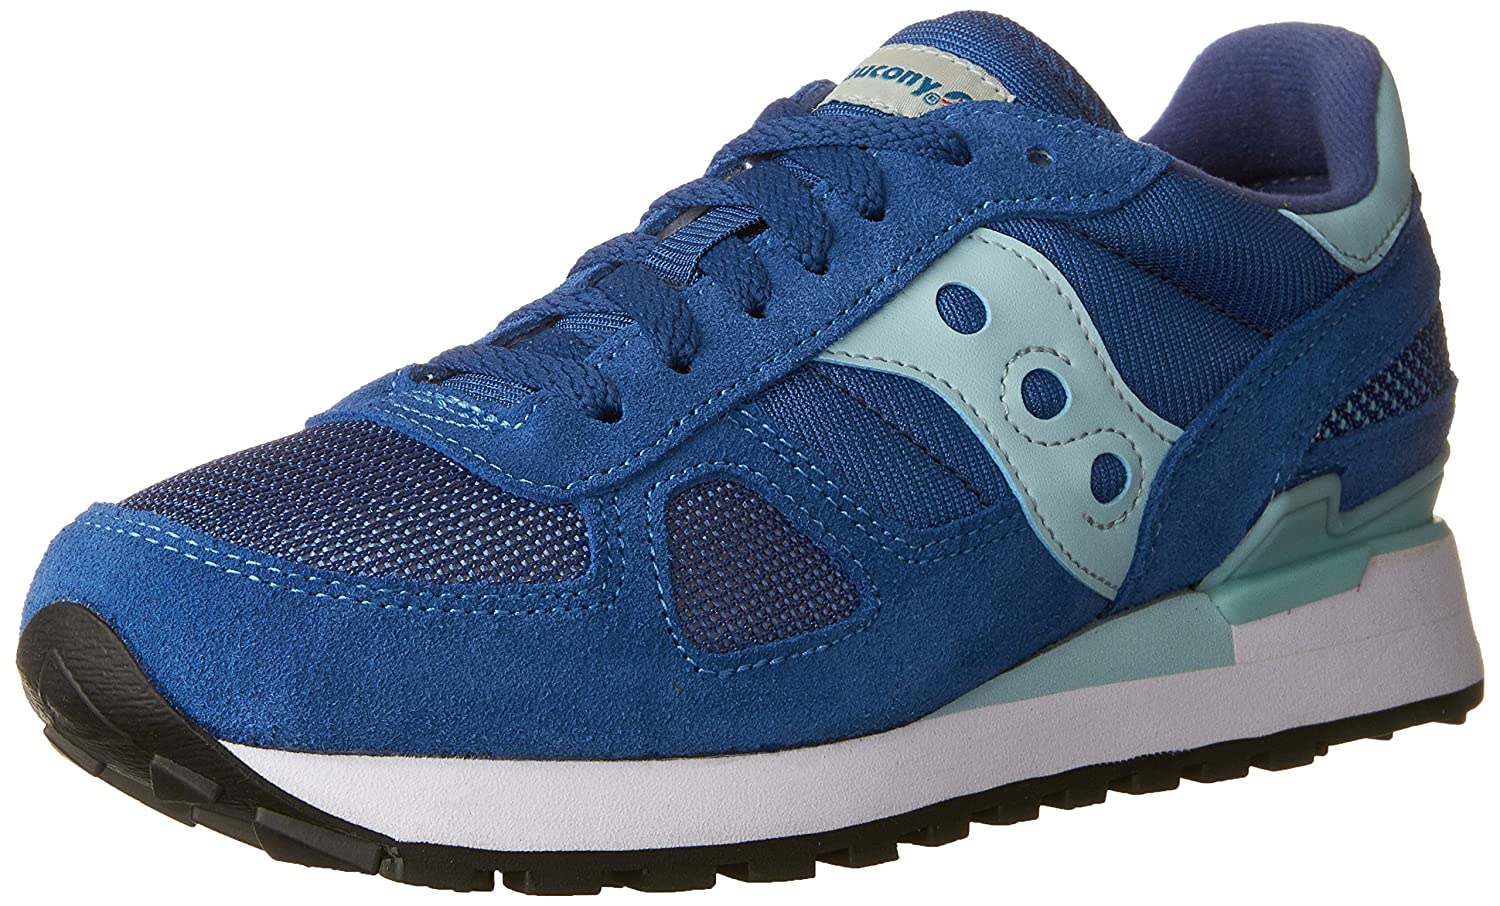 Saucony Originals Women's Shadow Original Fashion Sneaker B01H6P87LK 8.5 B(M) US|Blue | Aqua